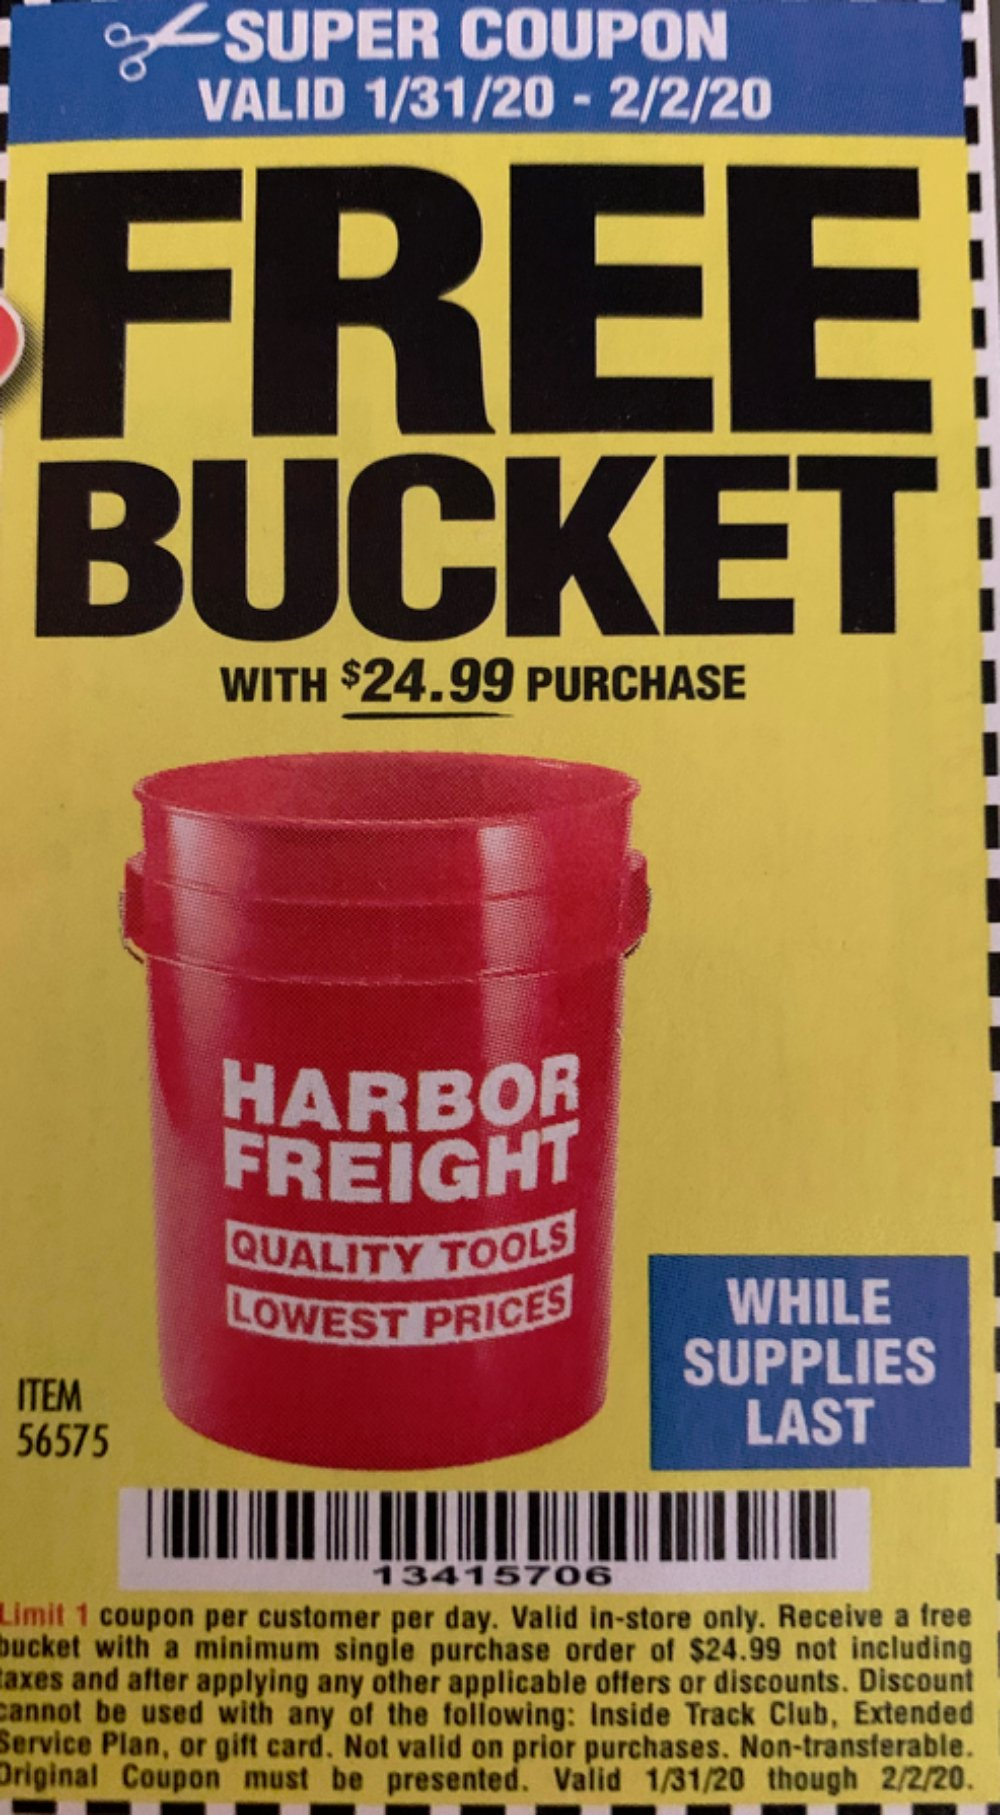 Harbor Freight Coupons, HF Coupons, 20% off - FREE - Harbor Freight Tools Bucket